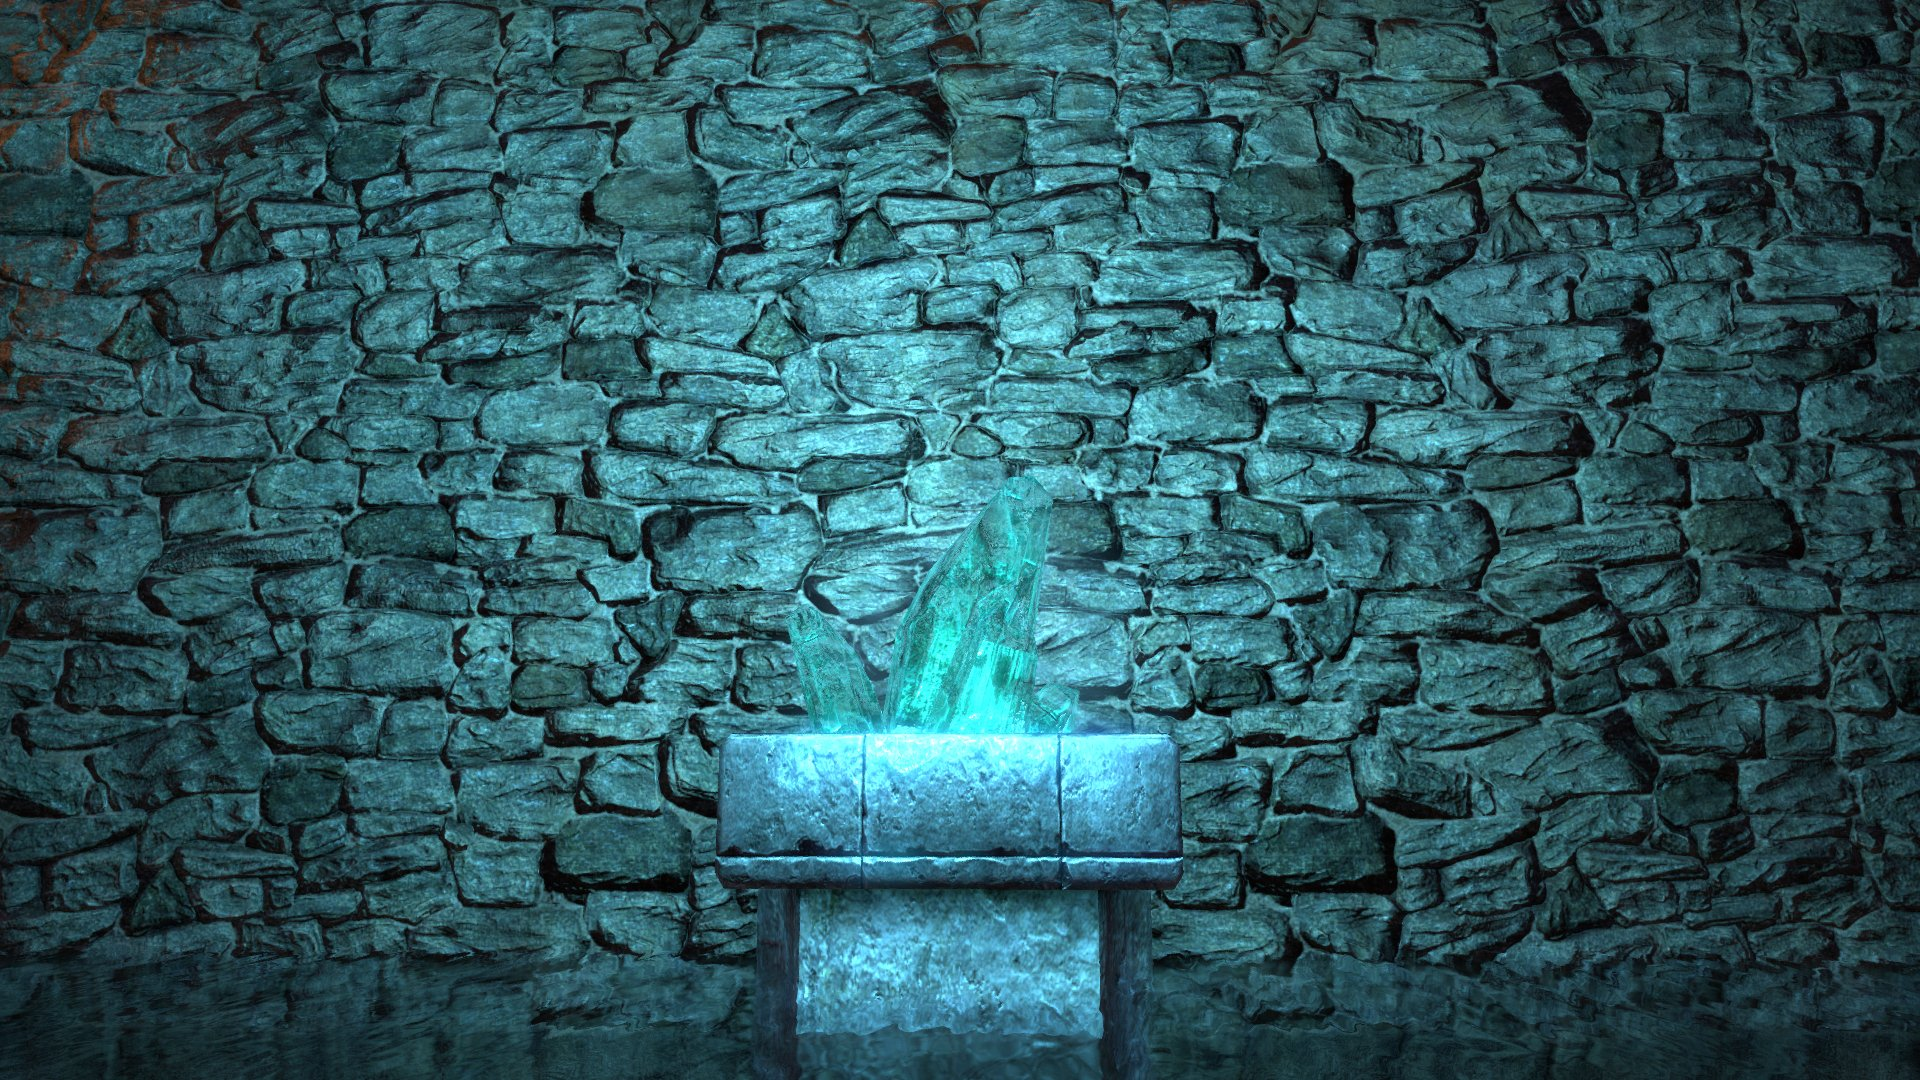 Shadowy Stone Wall and Glowing Crystal in Pool of Water wallpaper